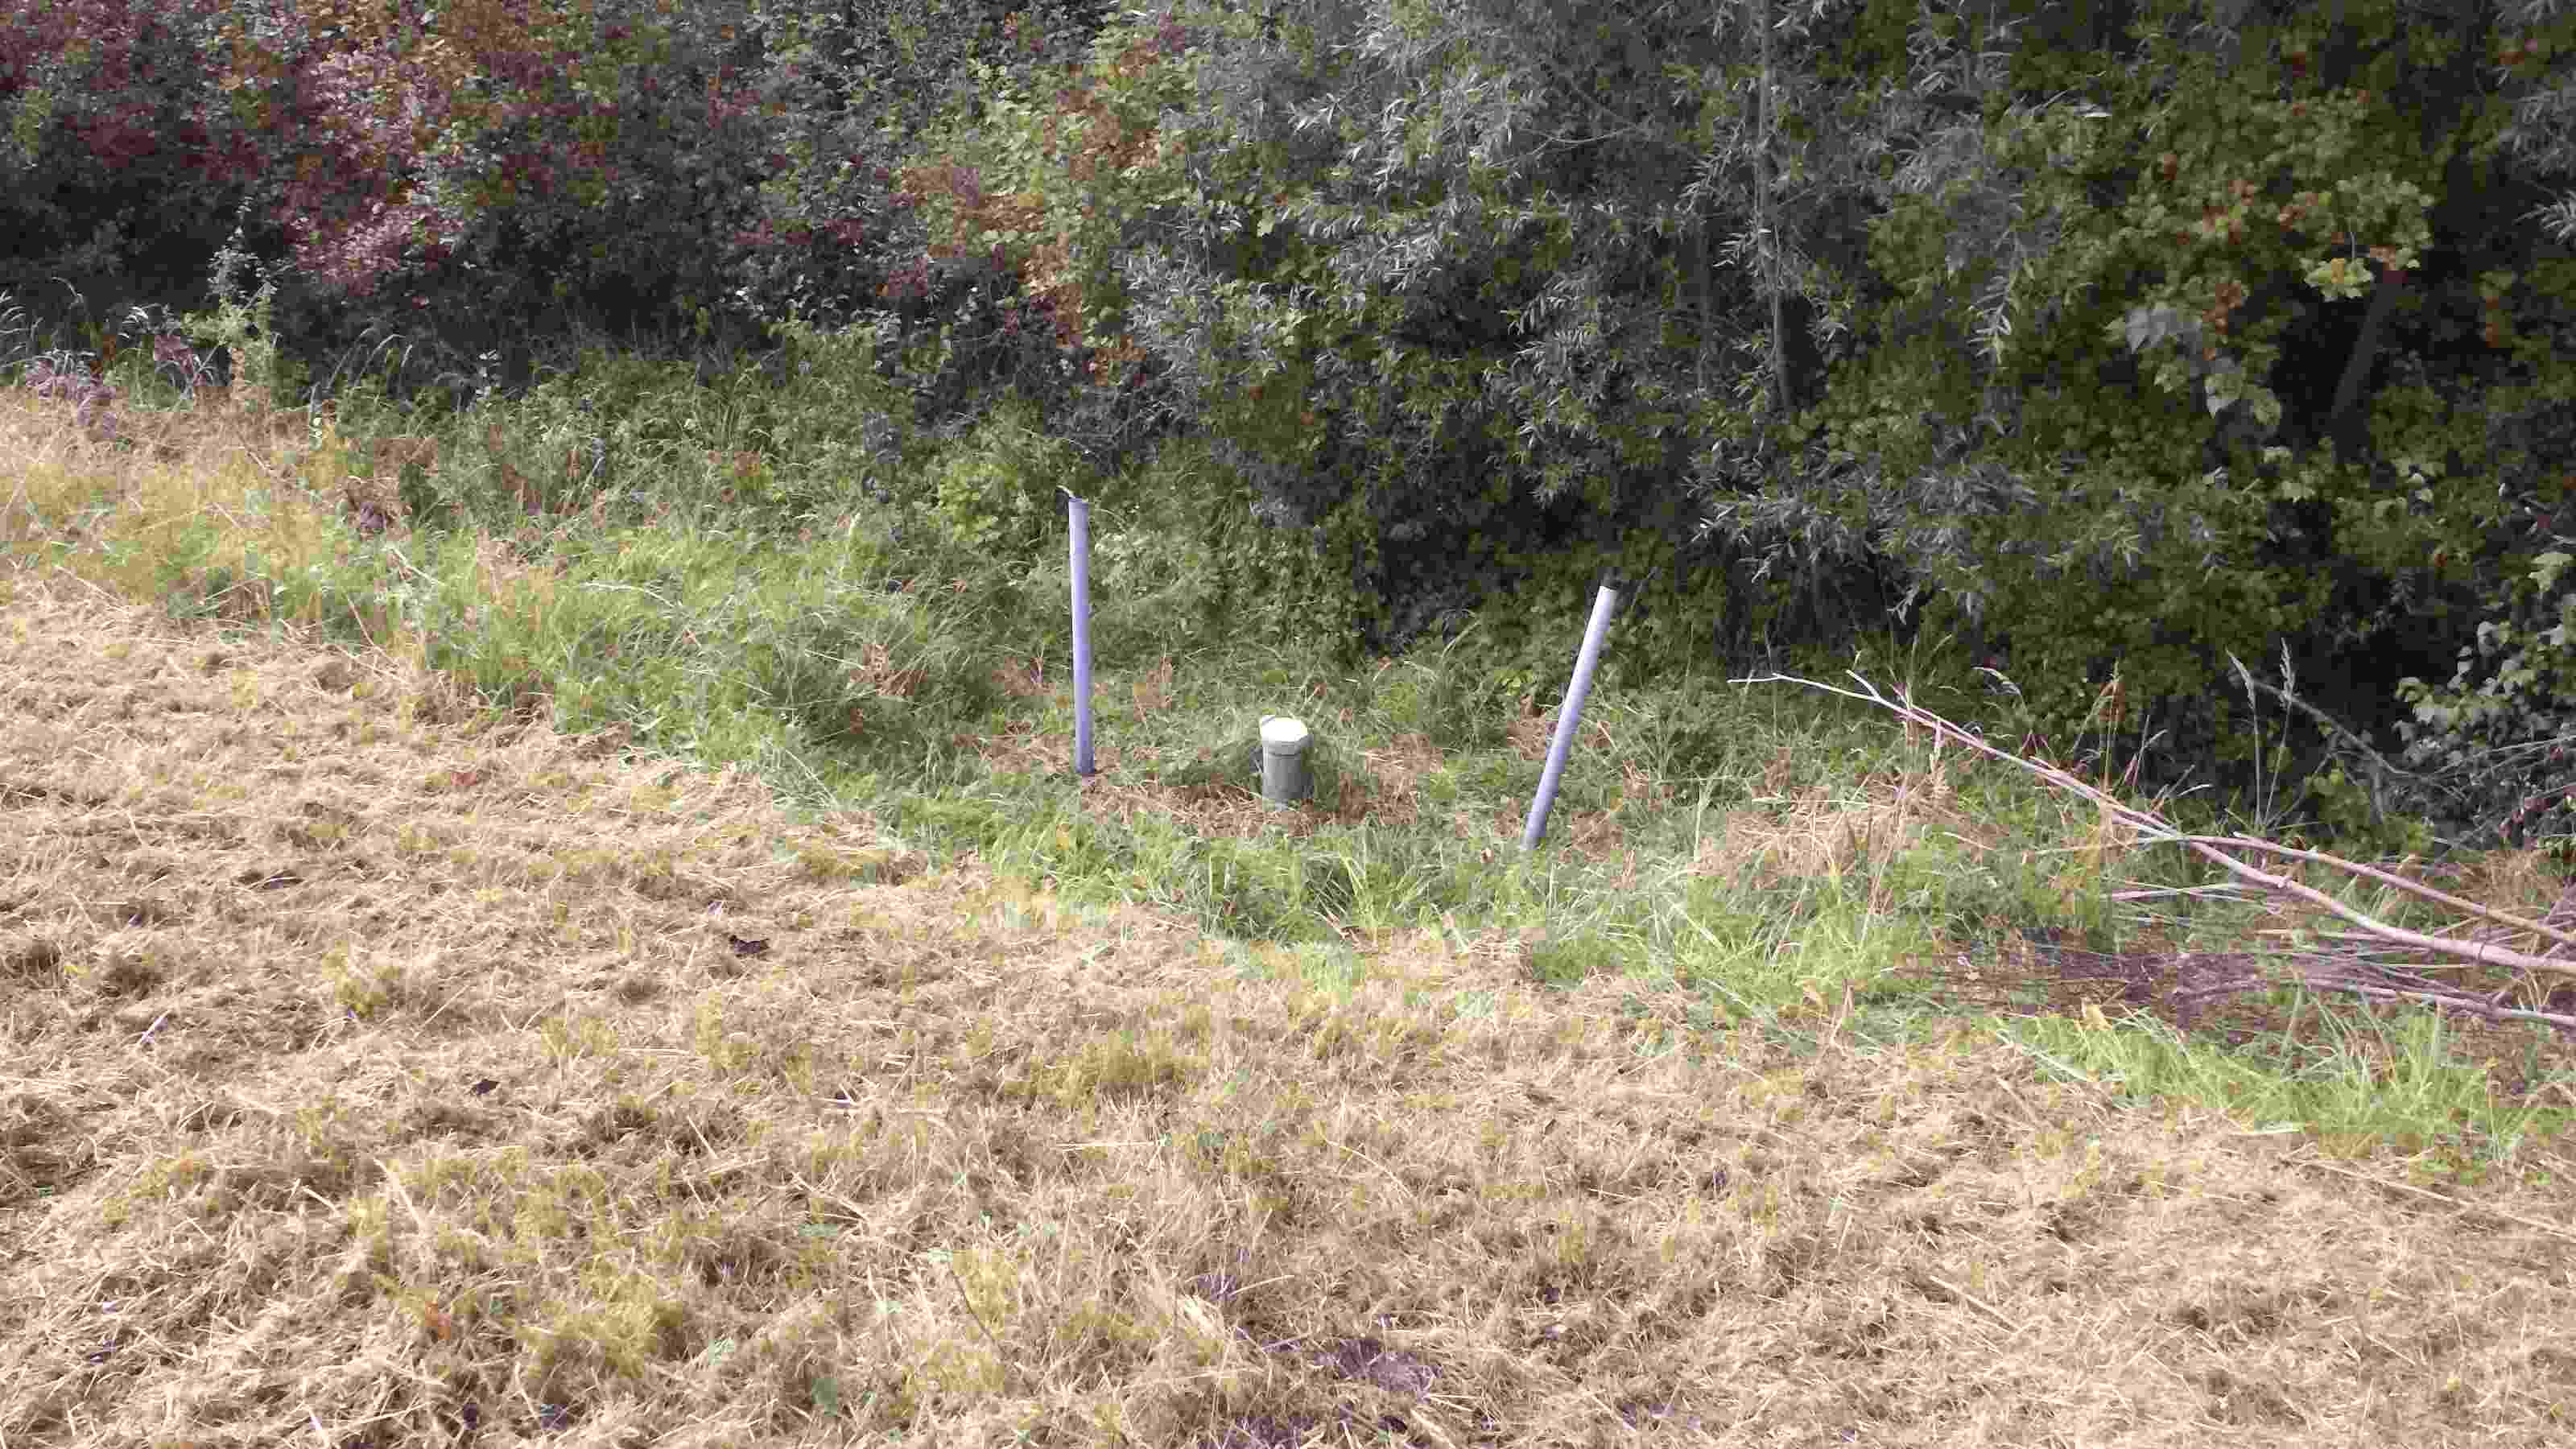 Picture of the measurement site